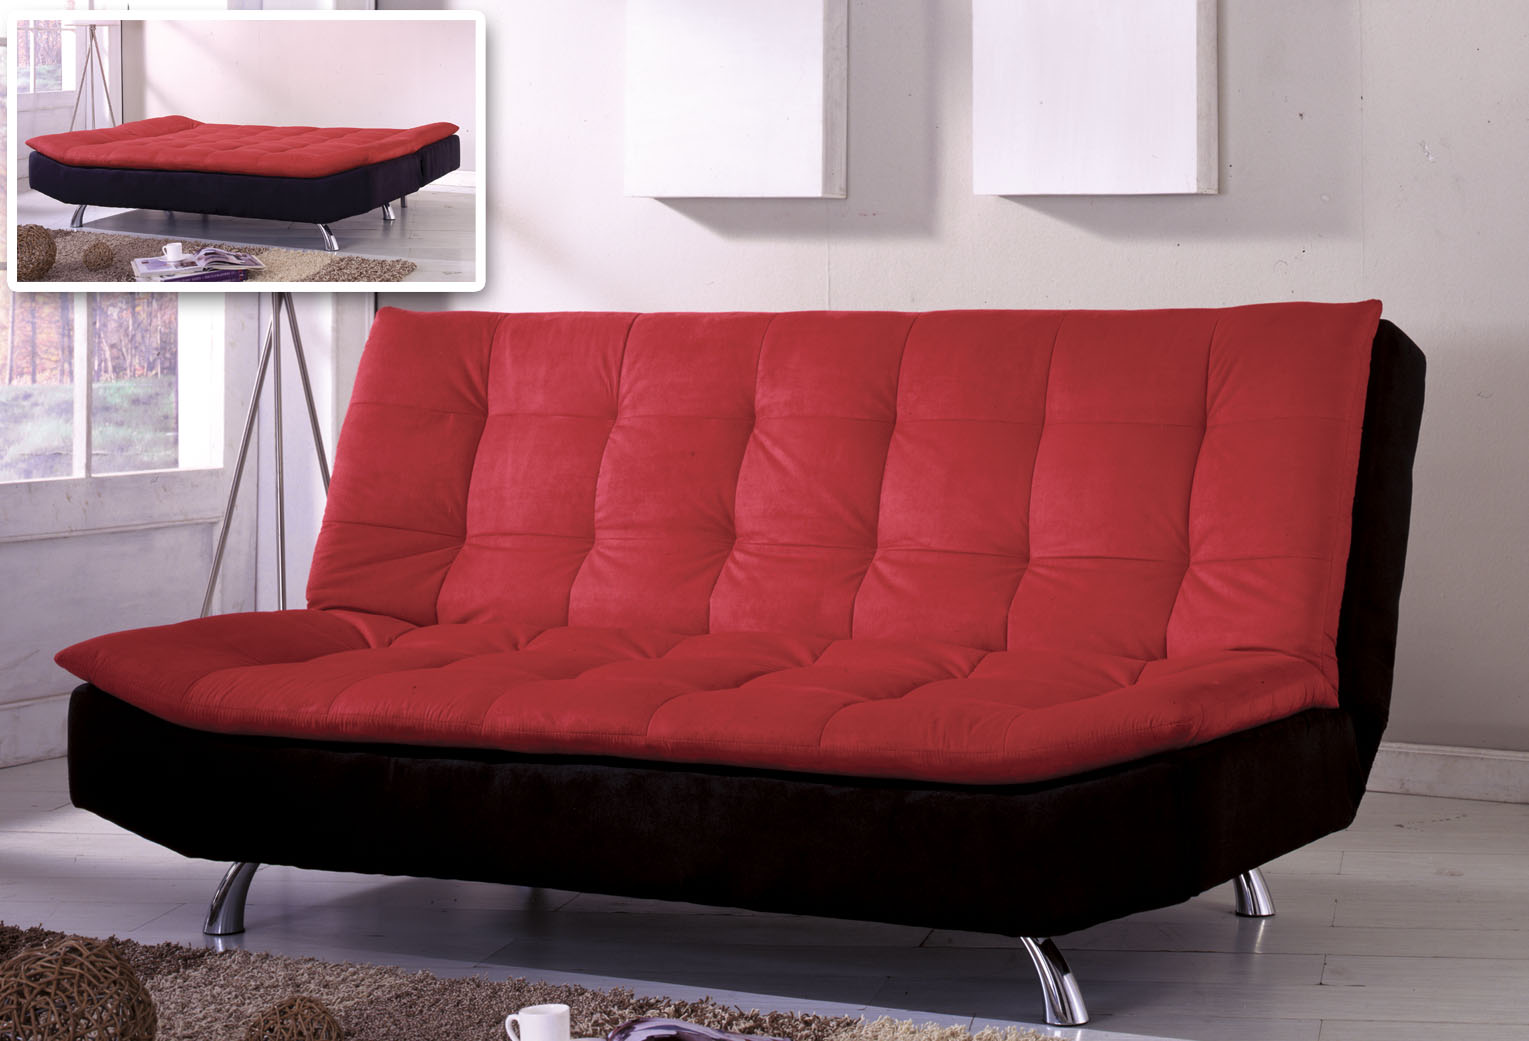 Futon couch bed 6451 Couch and bed